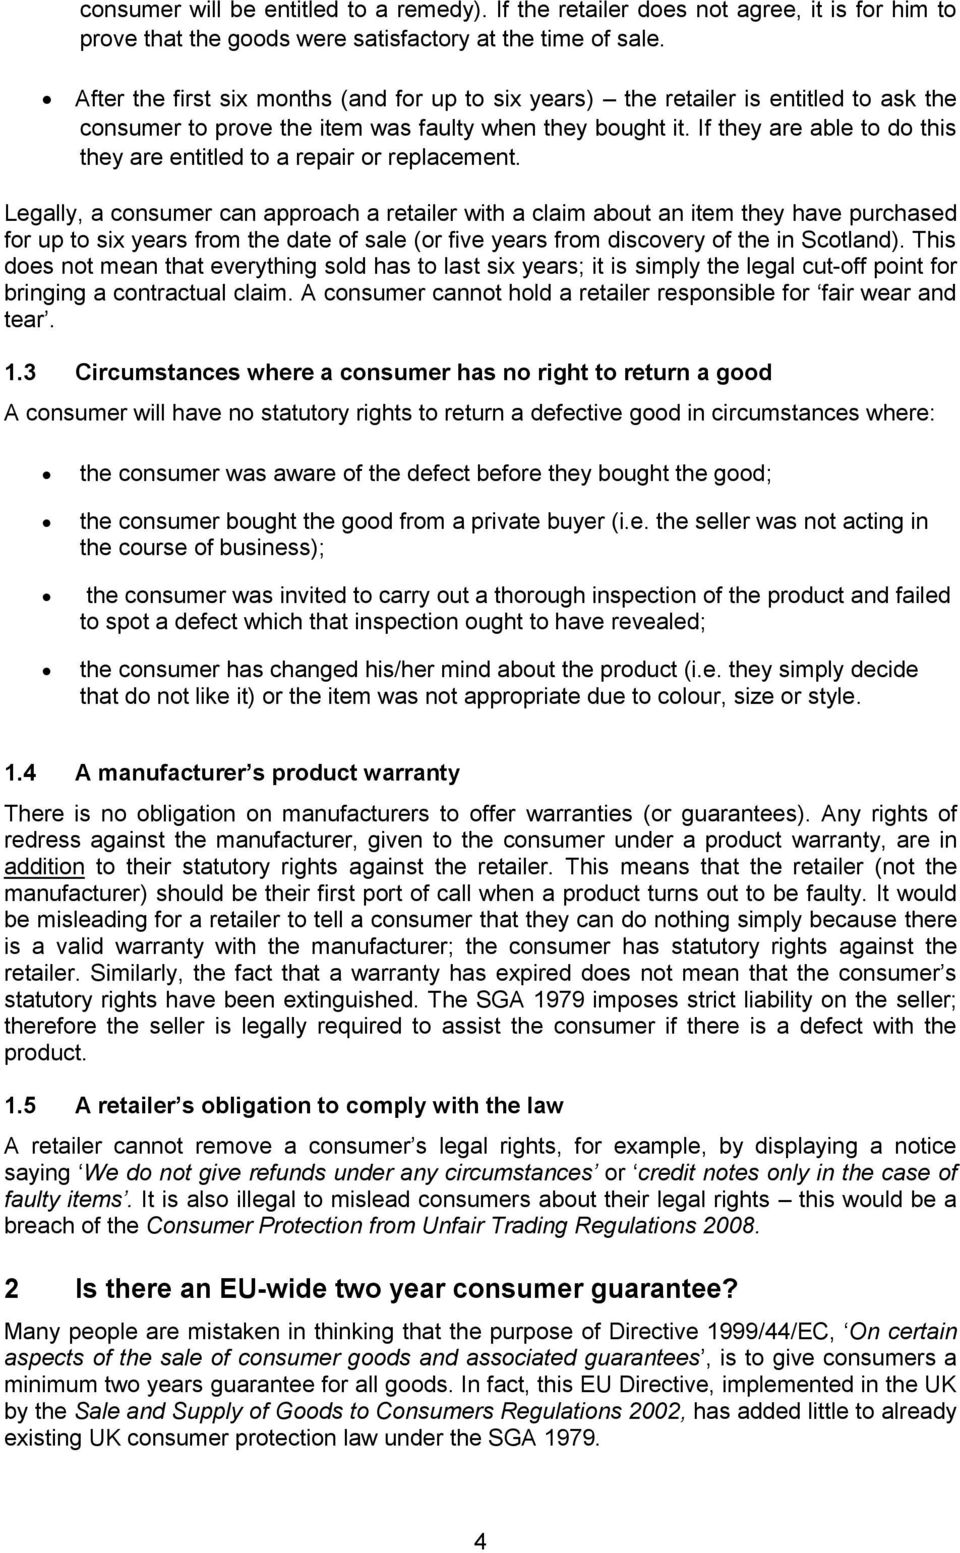 Consumer rights to return faulty goods - PDF